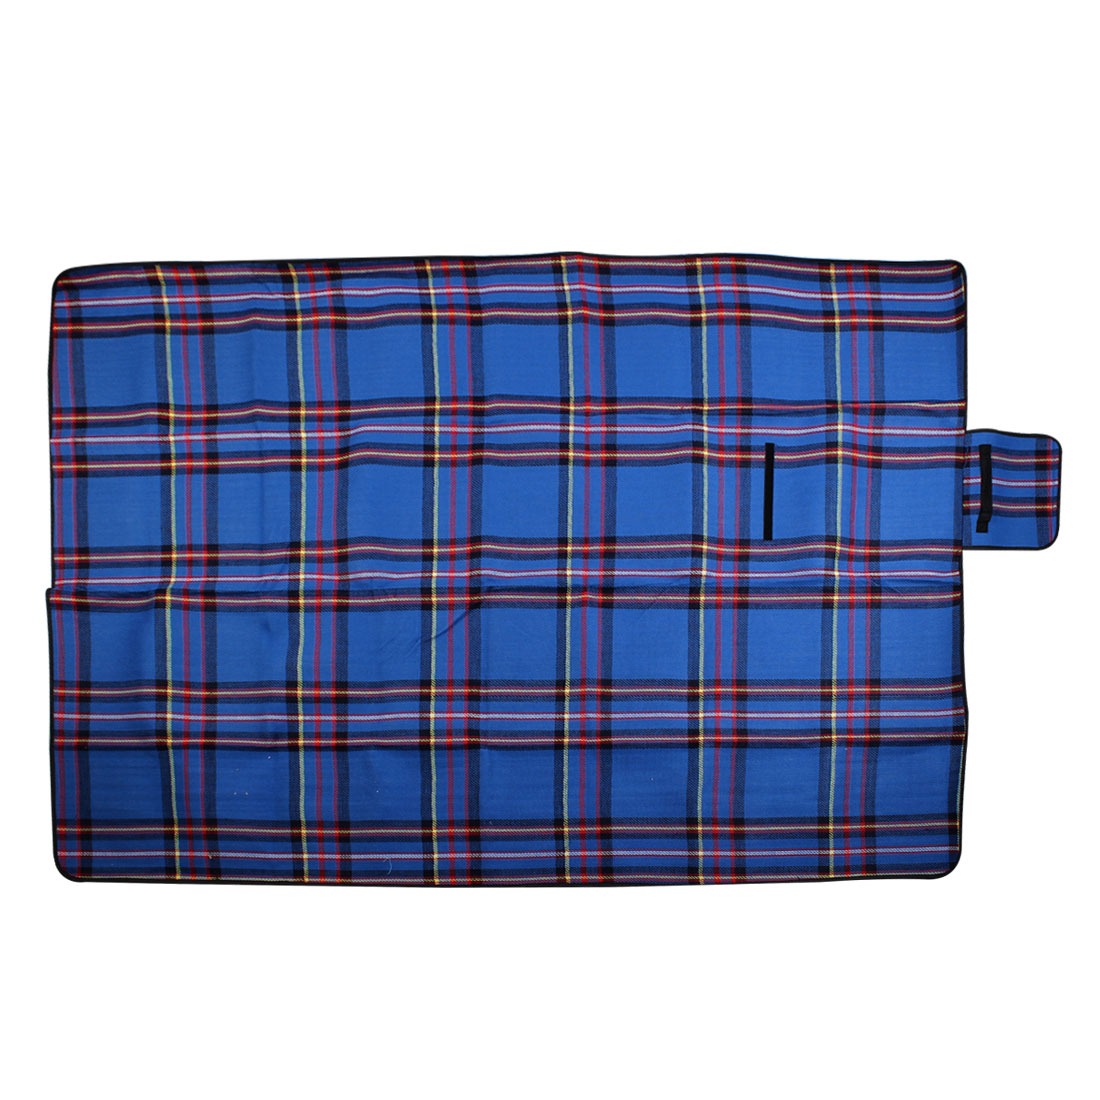 Portable Cashmere Plaid Pattern Waterproof Camping Picnic Mat Matress 200cm x150cm Blue